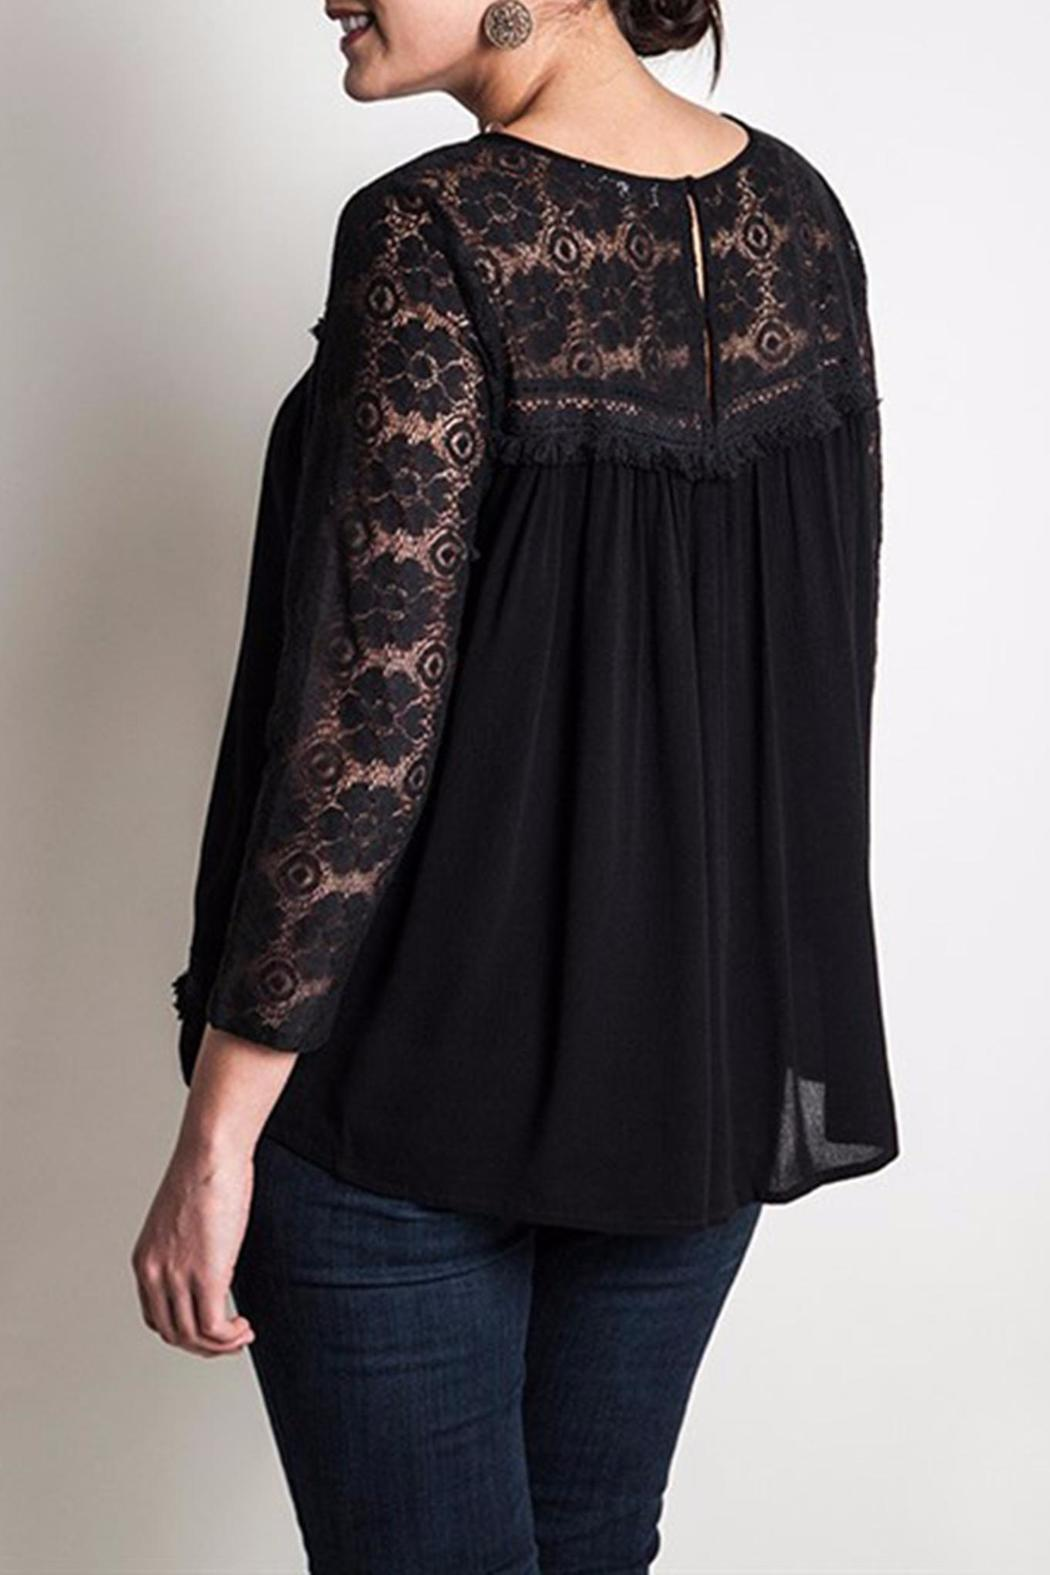 Umgee USA Lace Babydoll Top from Indiana by Lynn's Boutique ...